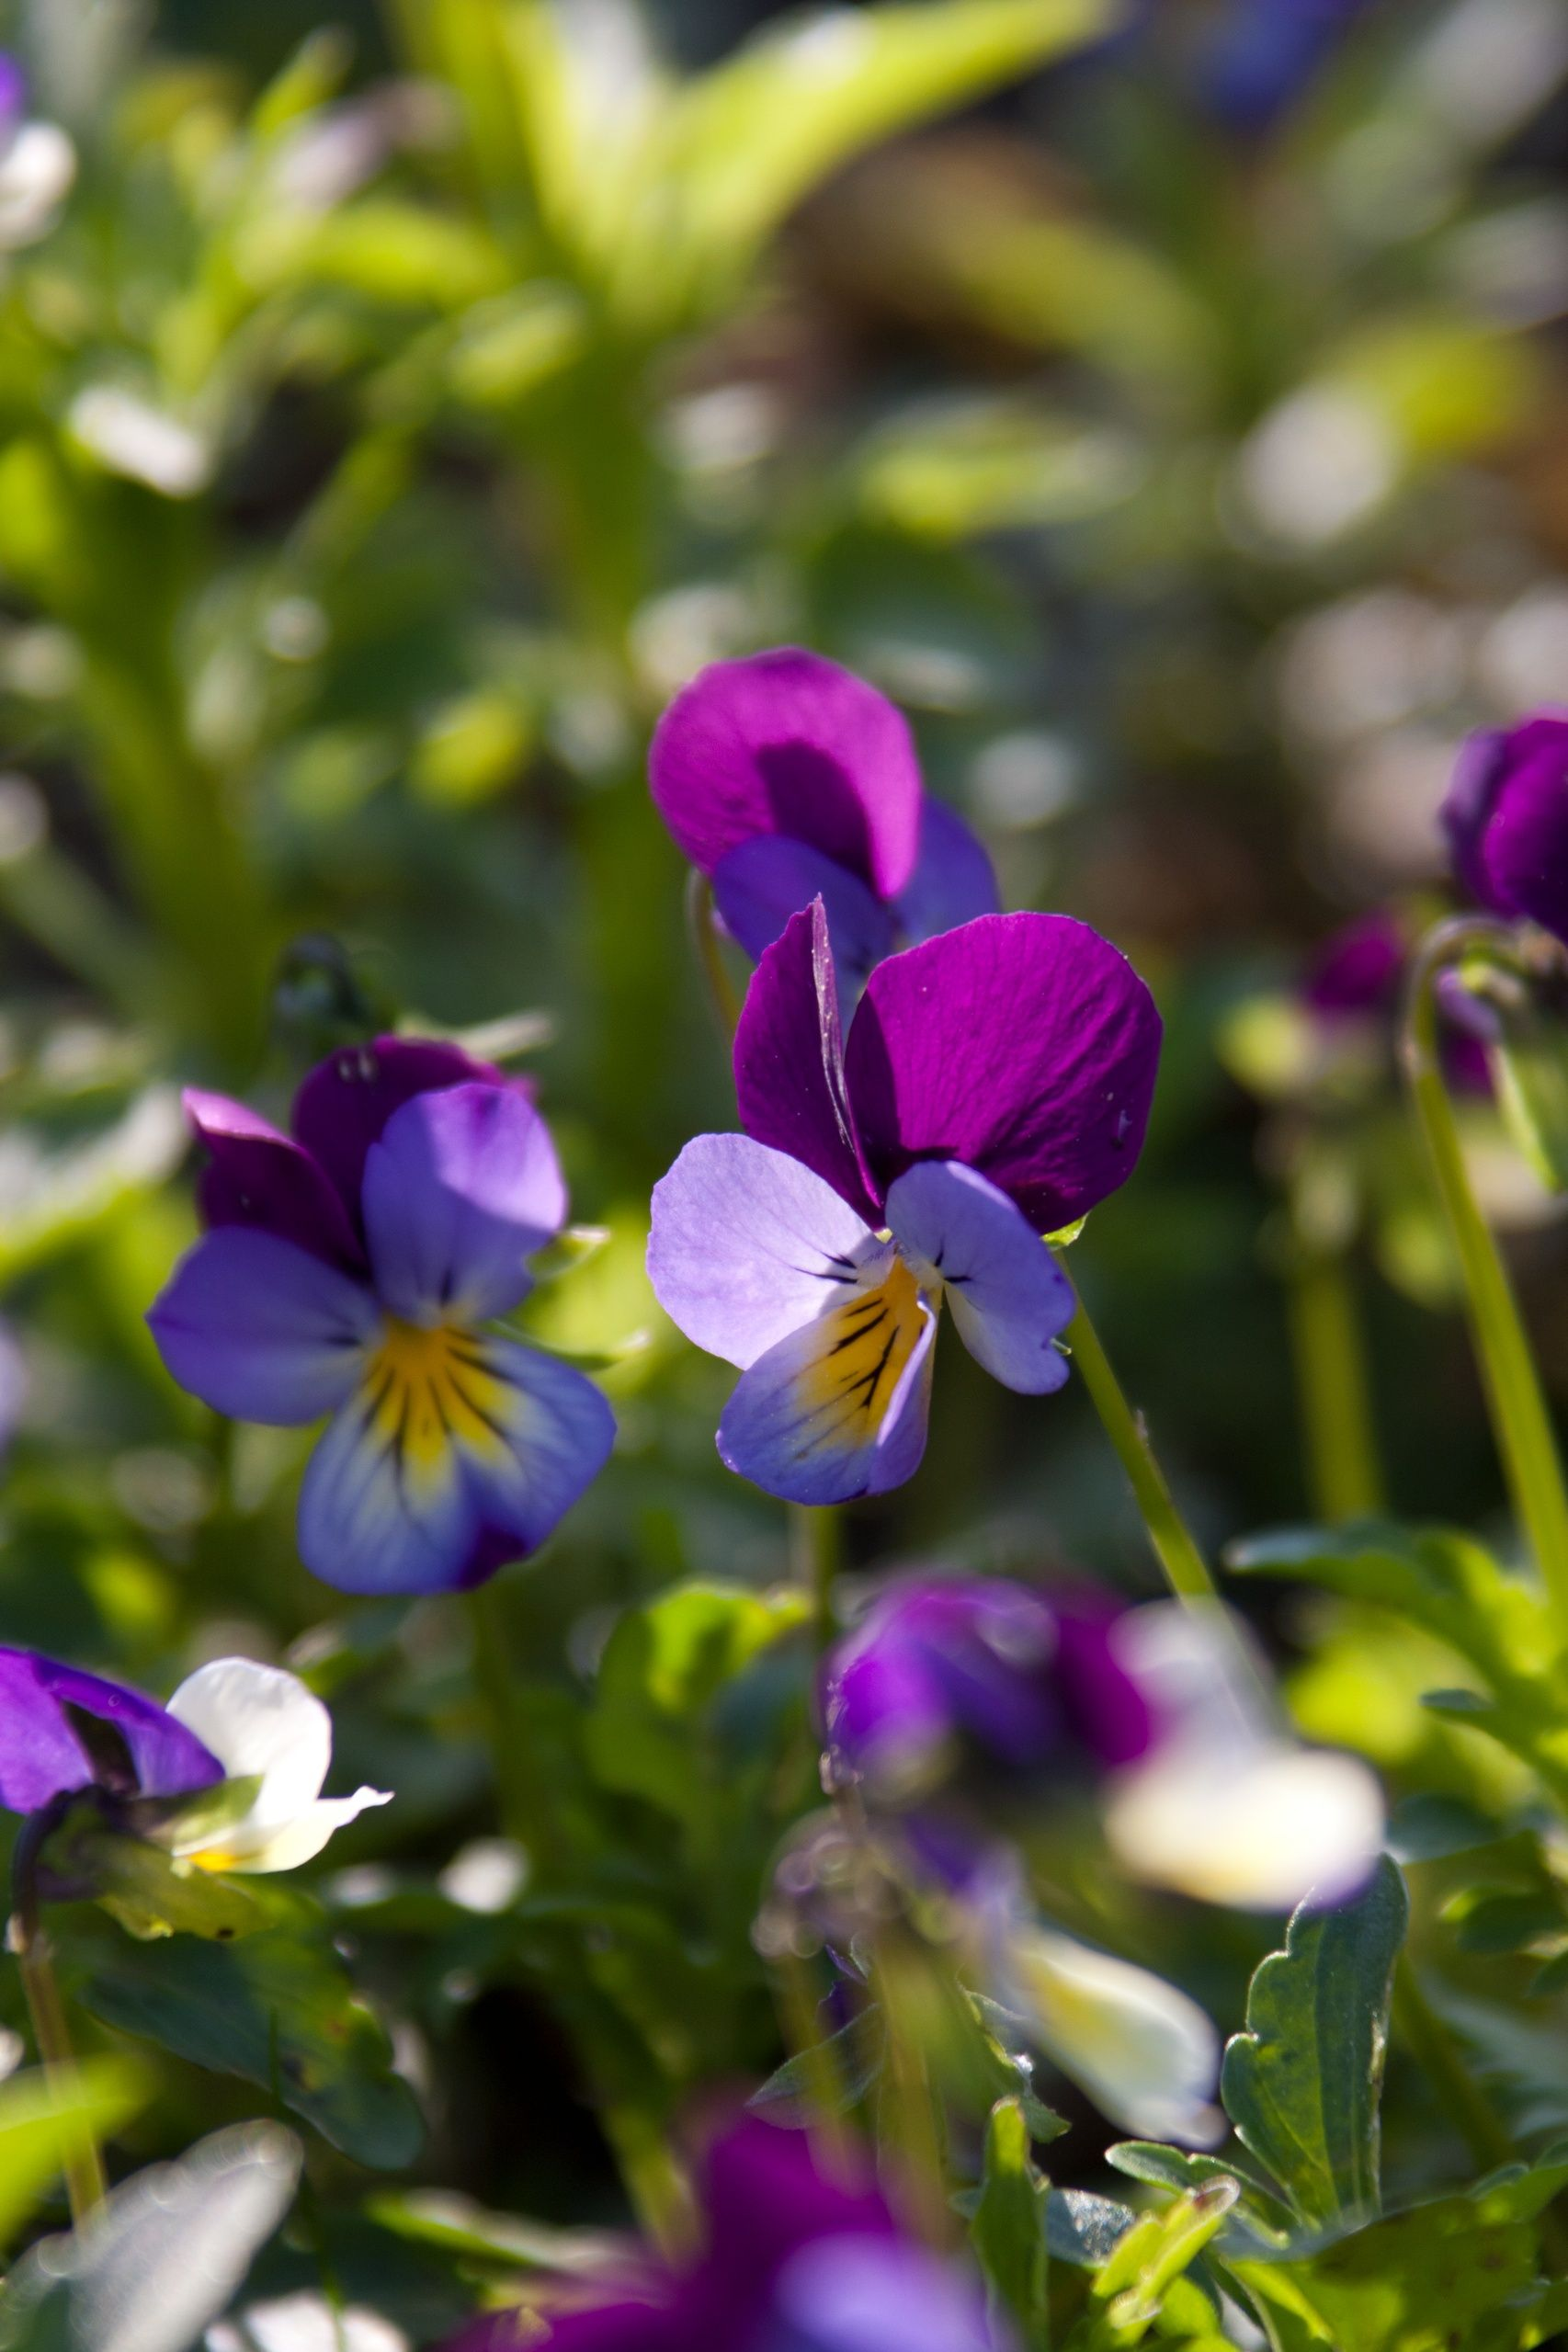 Dr Hauschka Colorful Flower Beds Nature Garden Pansies